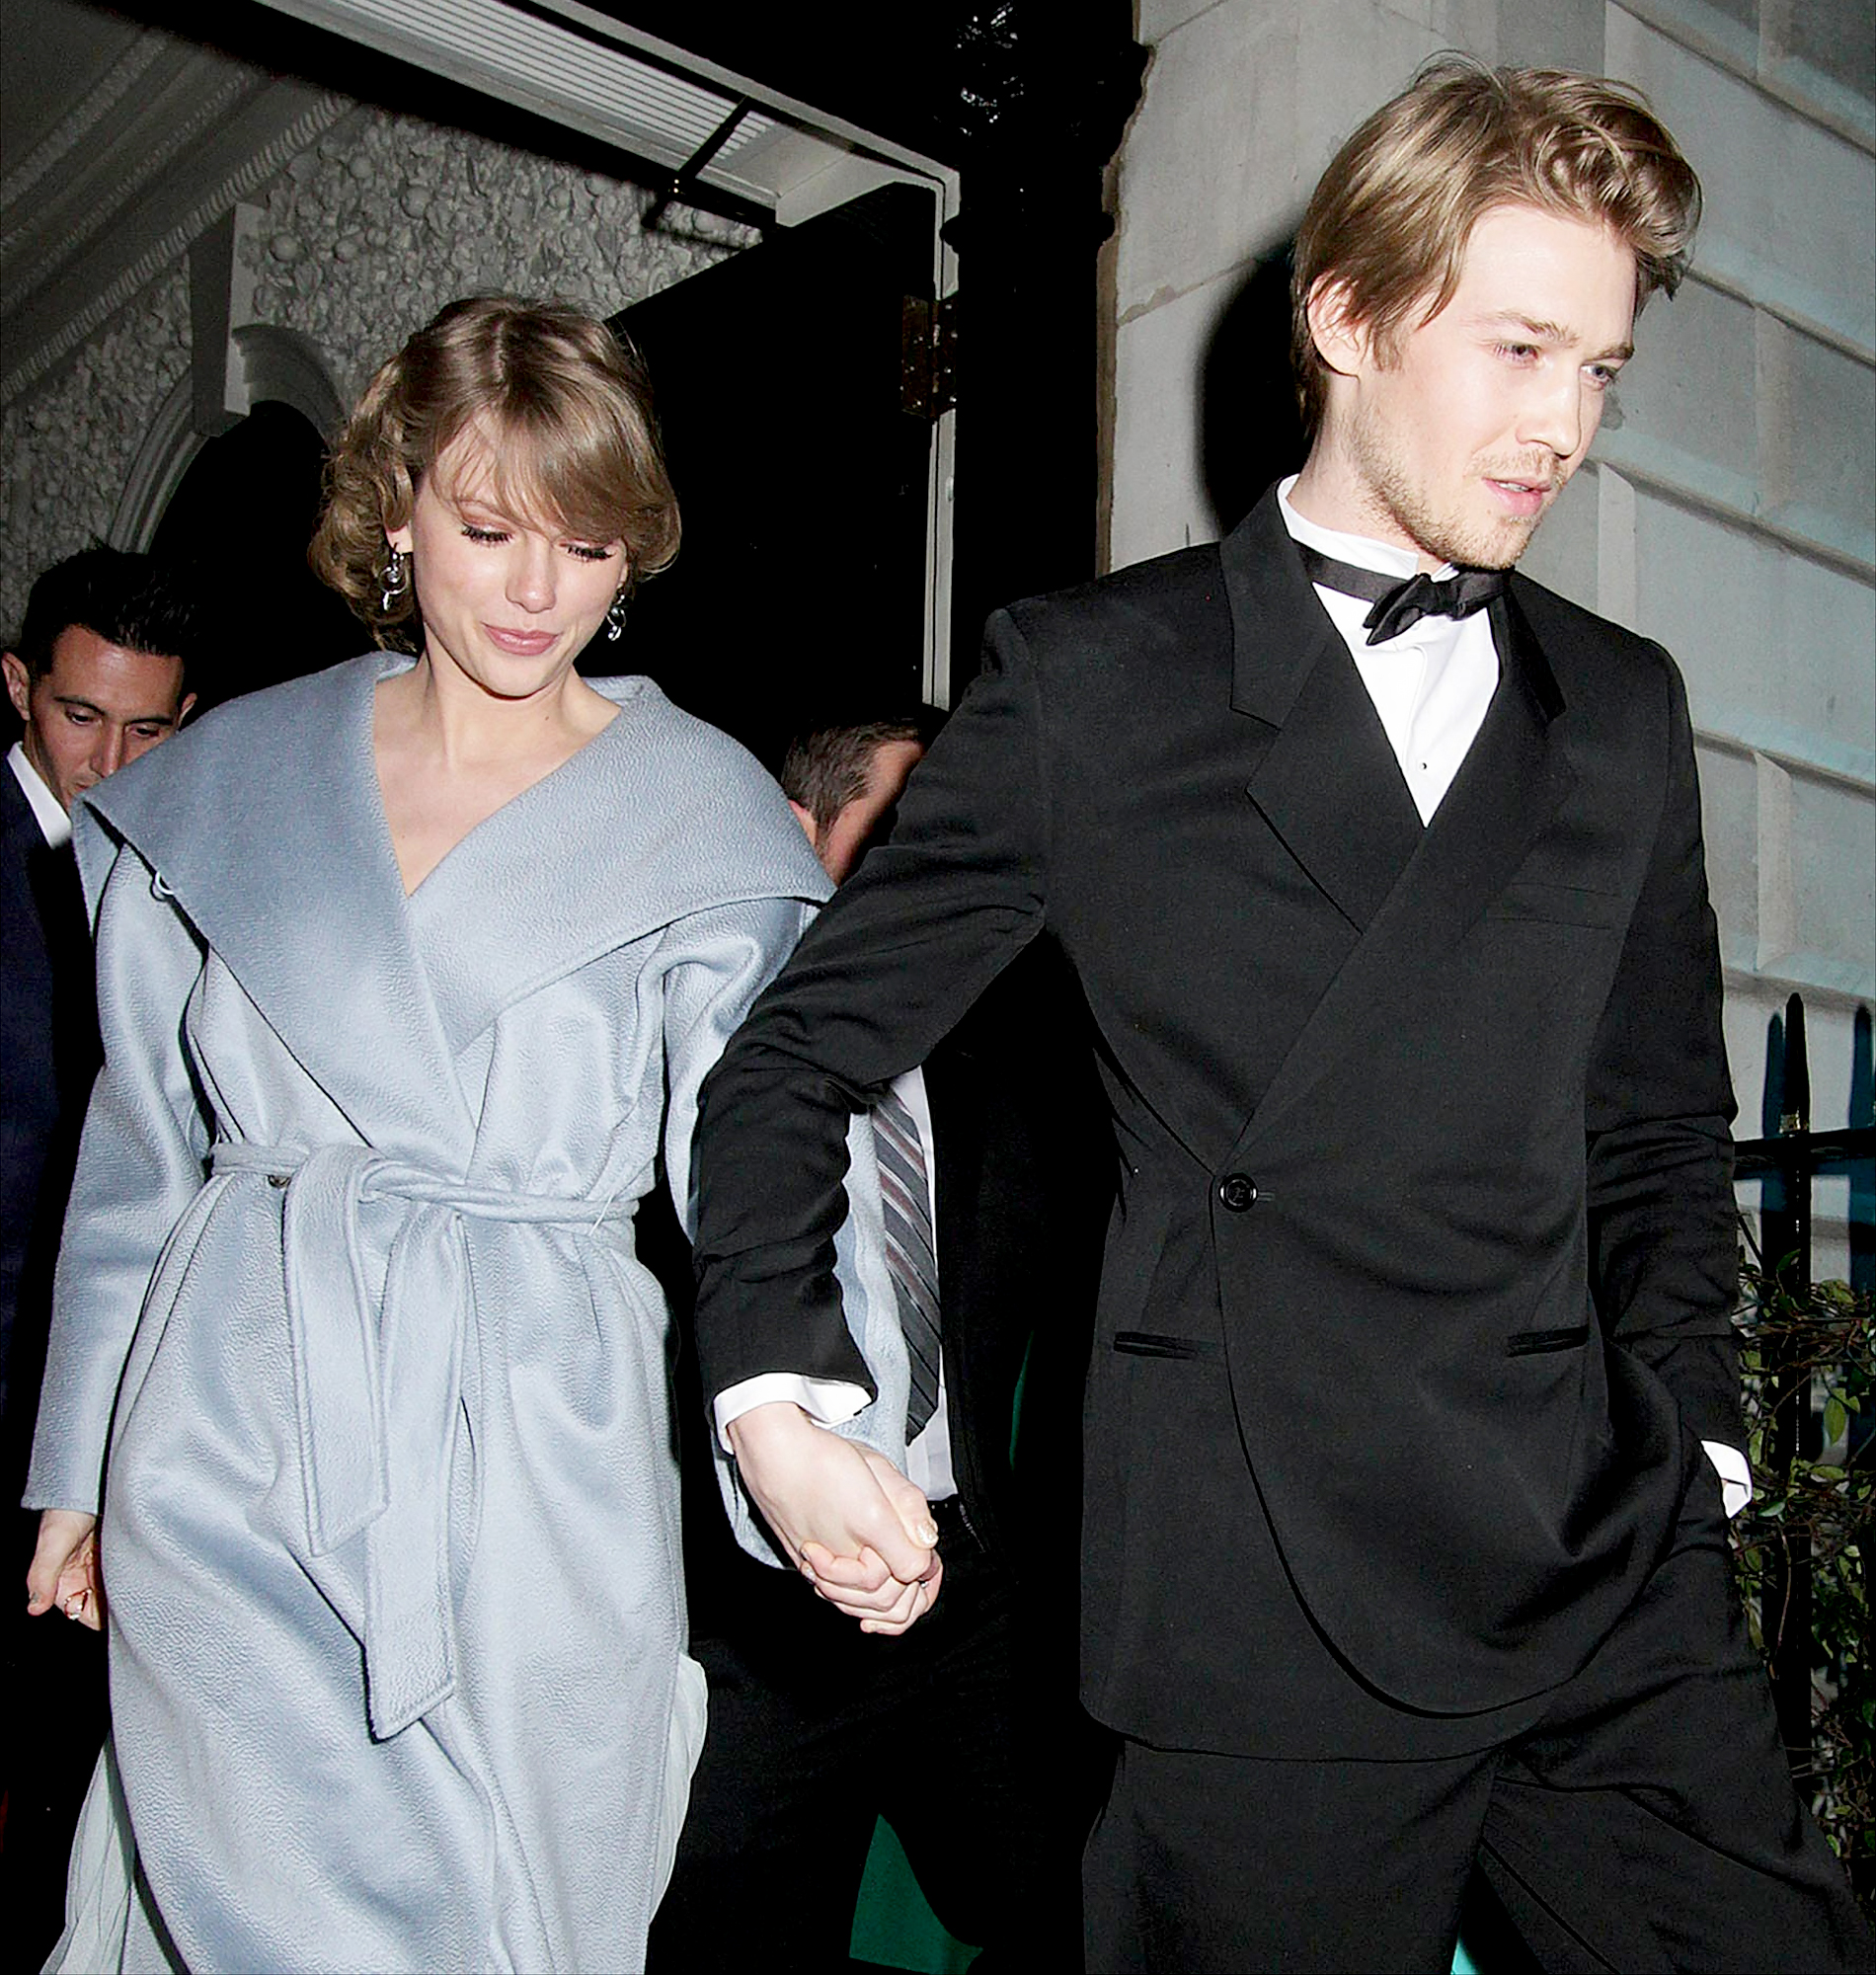 Taylor-Swift-Joe-Alwyn-bafta-after-party - North America Rights Only – London, UK -20190210- Taylor Swift and her latest boyfriend, Joe Alwyn are seen holding hands while out to the Vogue Bafta Event. -PICTURED: Taylor Swift, Joe Alwyn -PHOTO by: Blitz Pictures/INSTARimages.com Disclaimer: This is an editorial, rights-managed image.